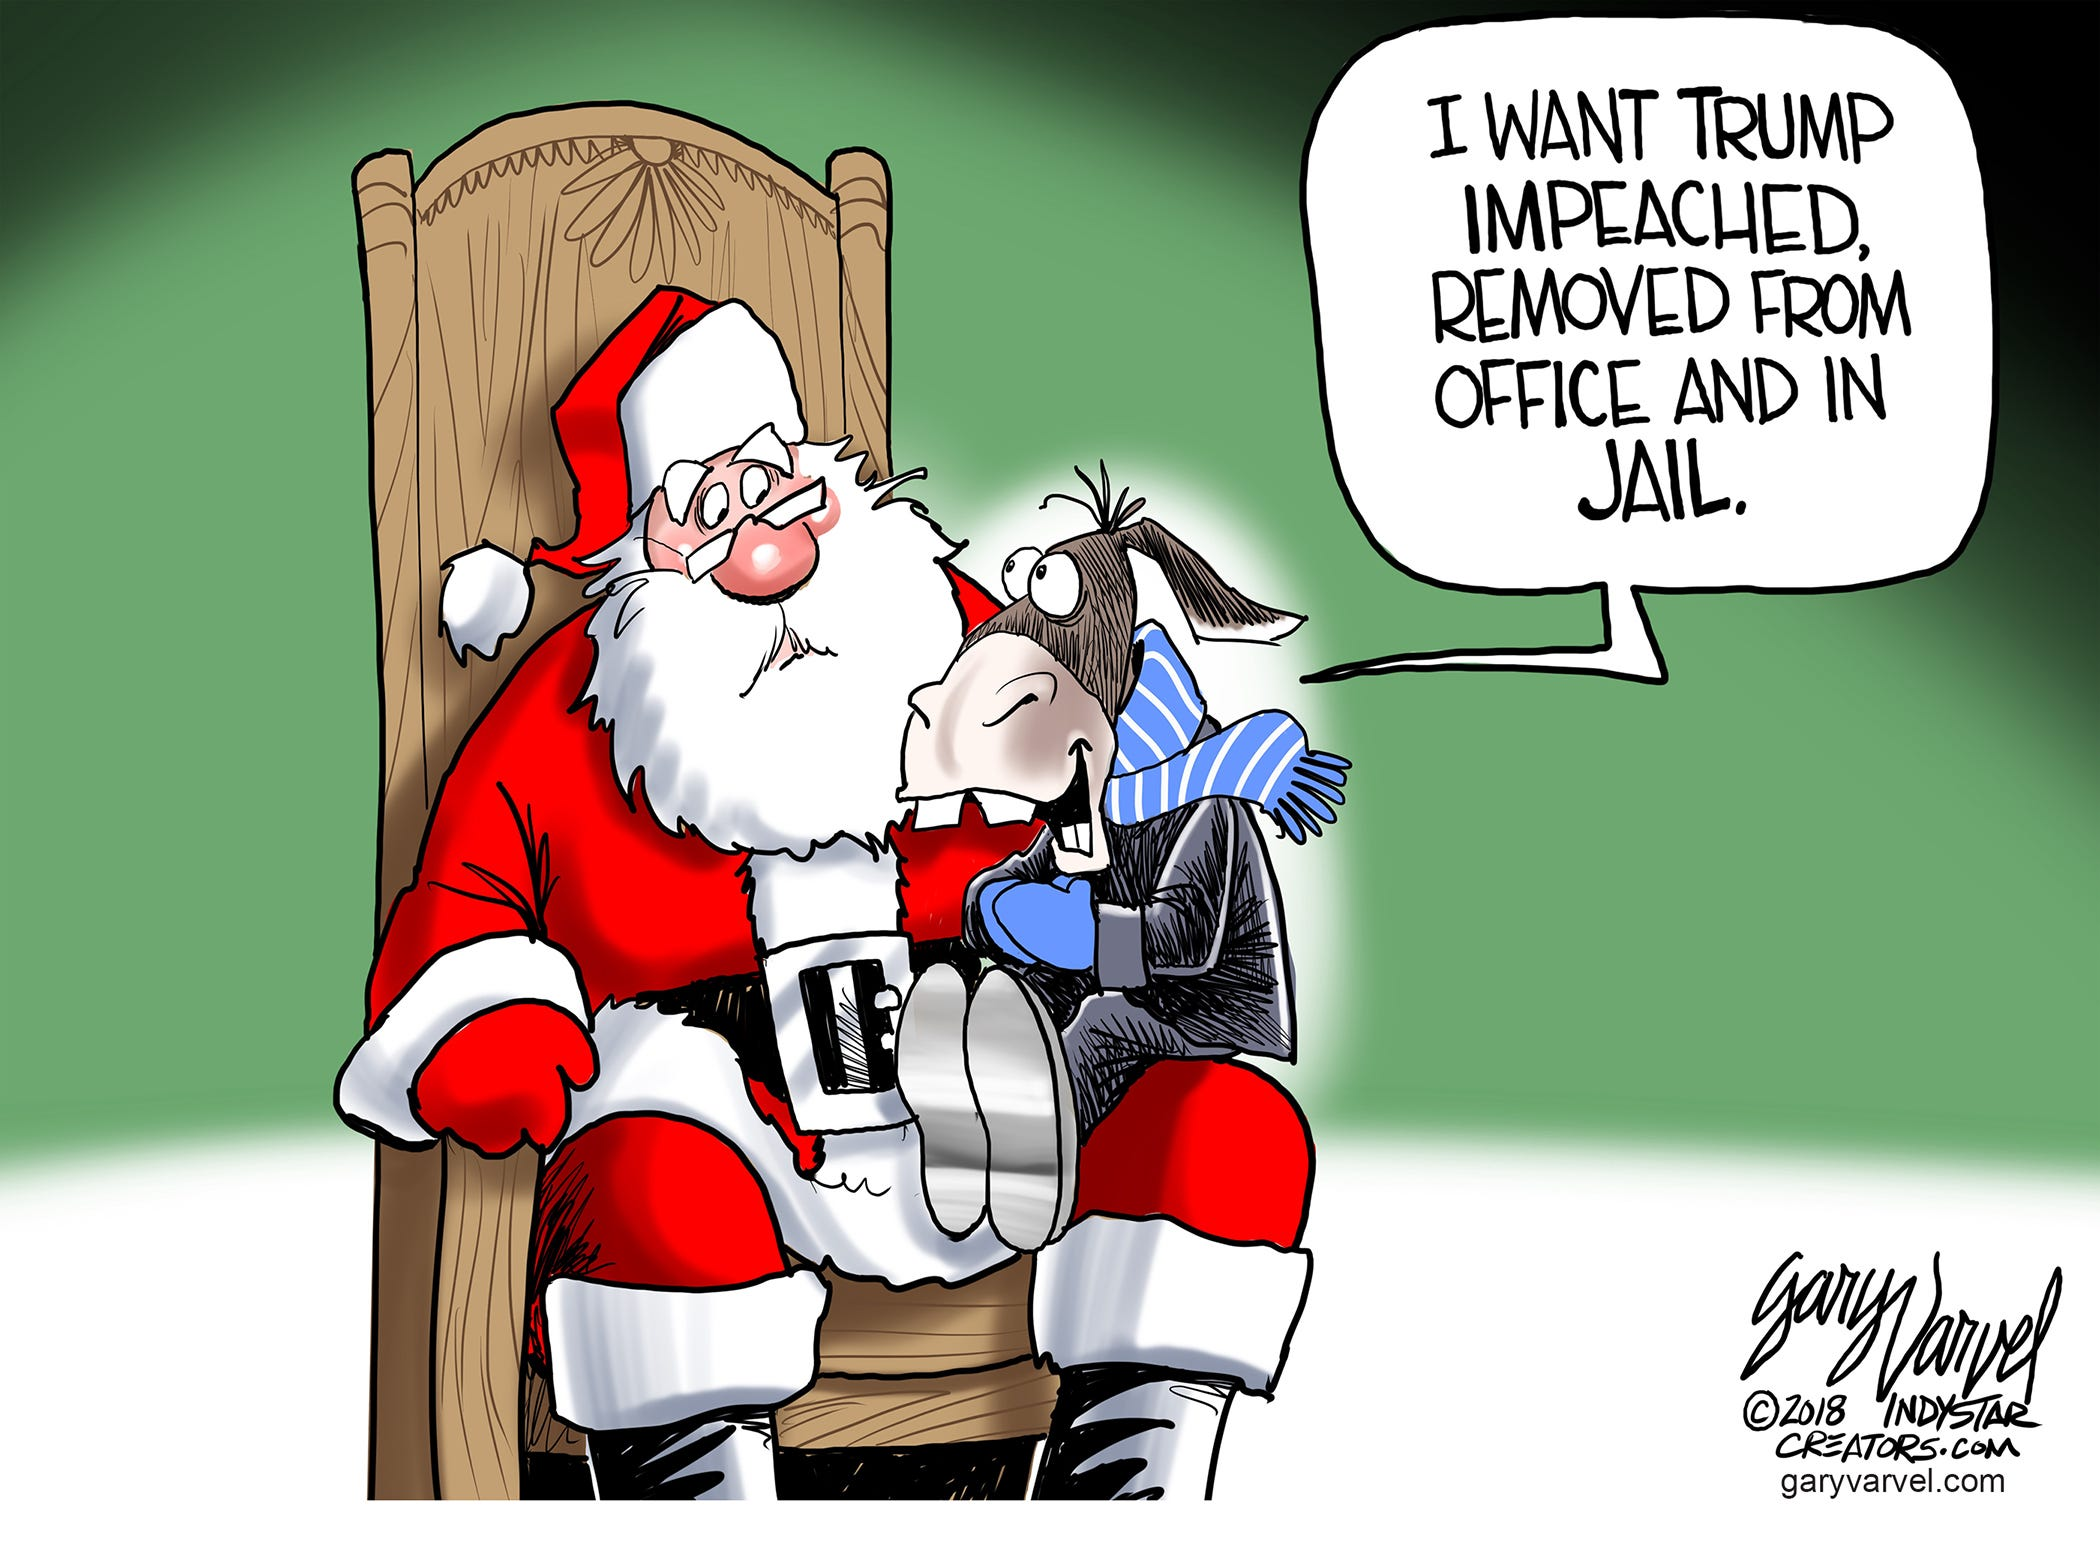 ead1f4422fbb1 http   www.indystar.com picture-gallery opinion columnists varvel 2017 ...